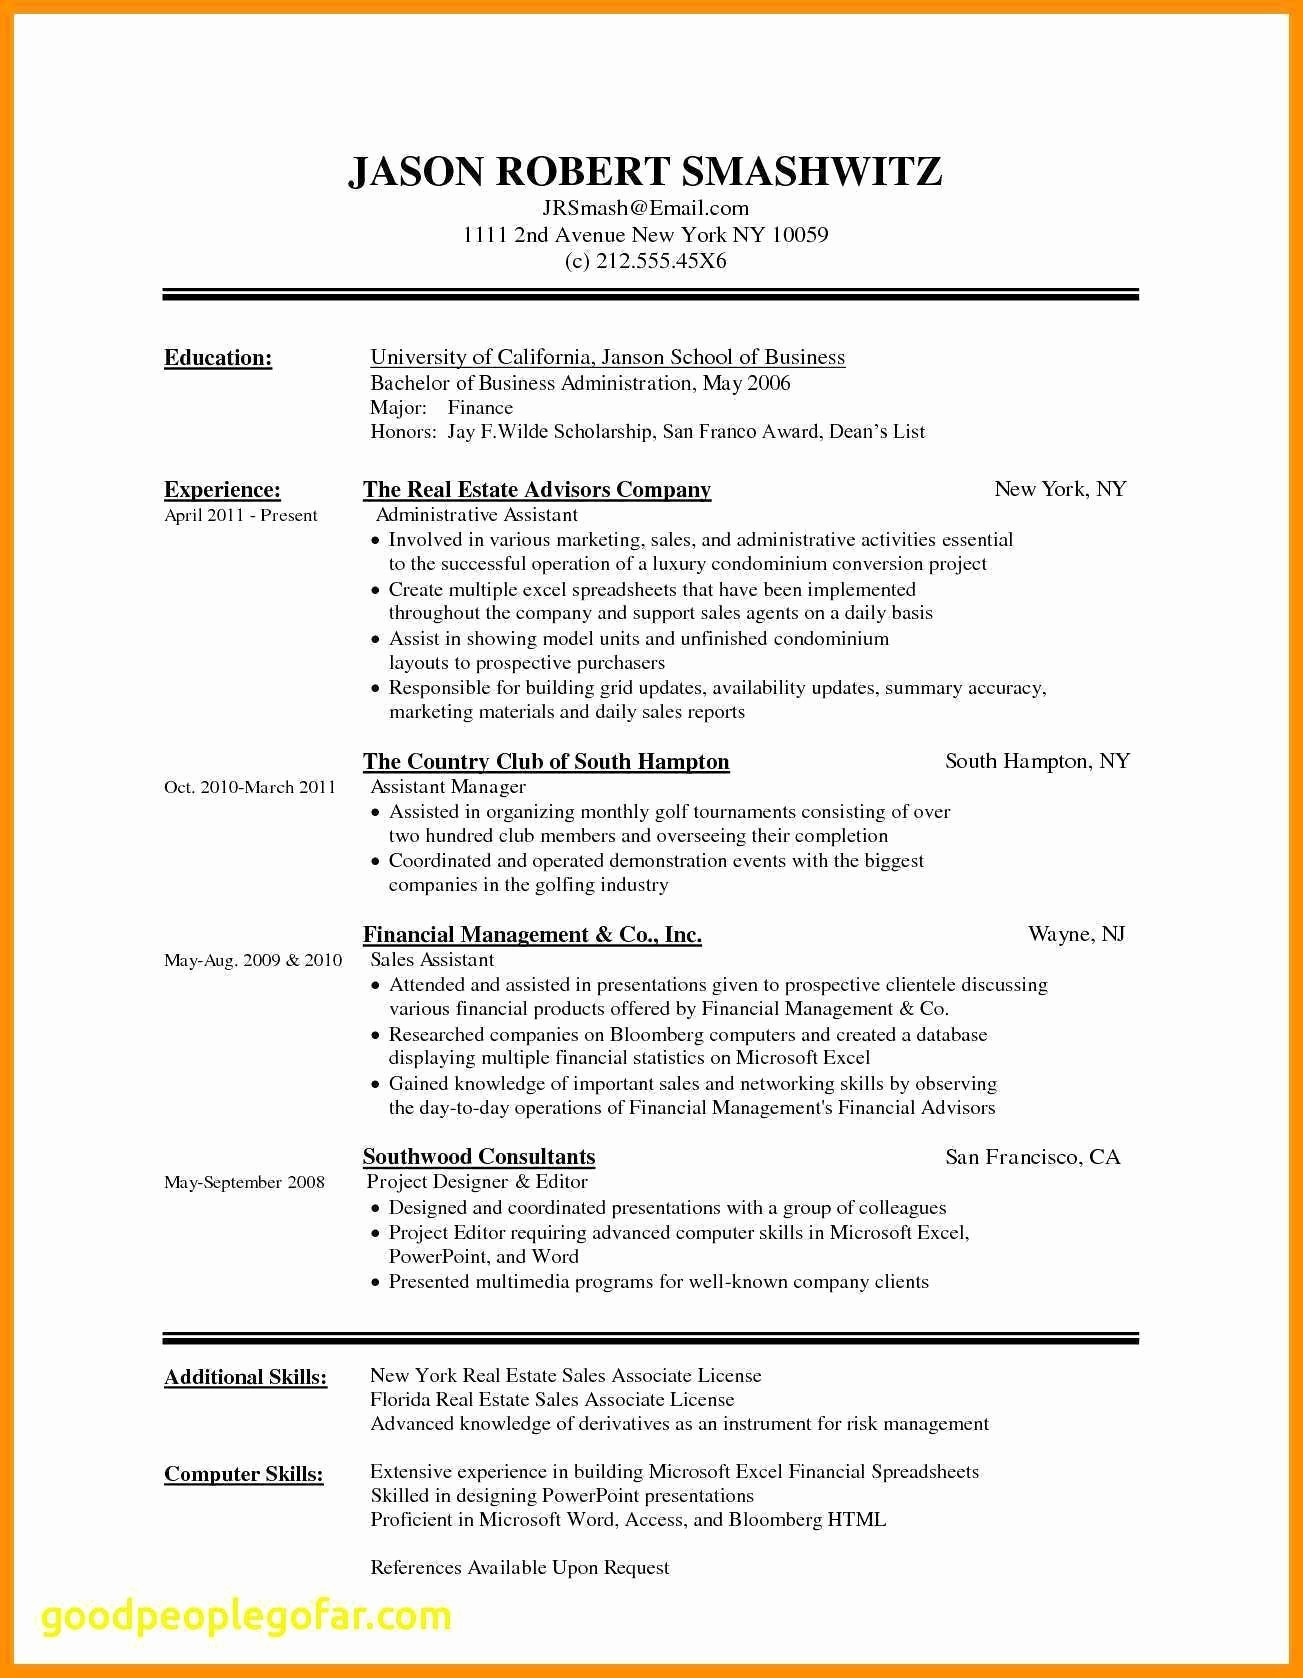 Word Resume Template Free - 16 Fresh Free Resume Templates Microsoft